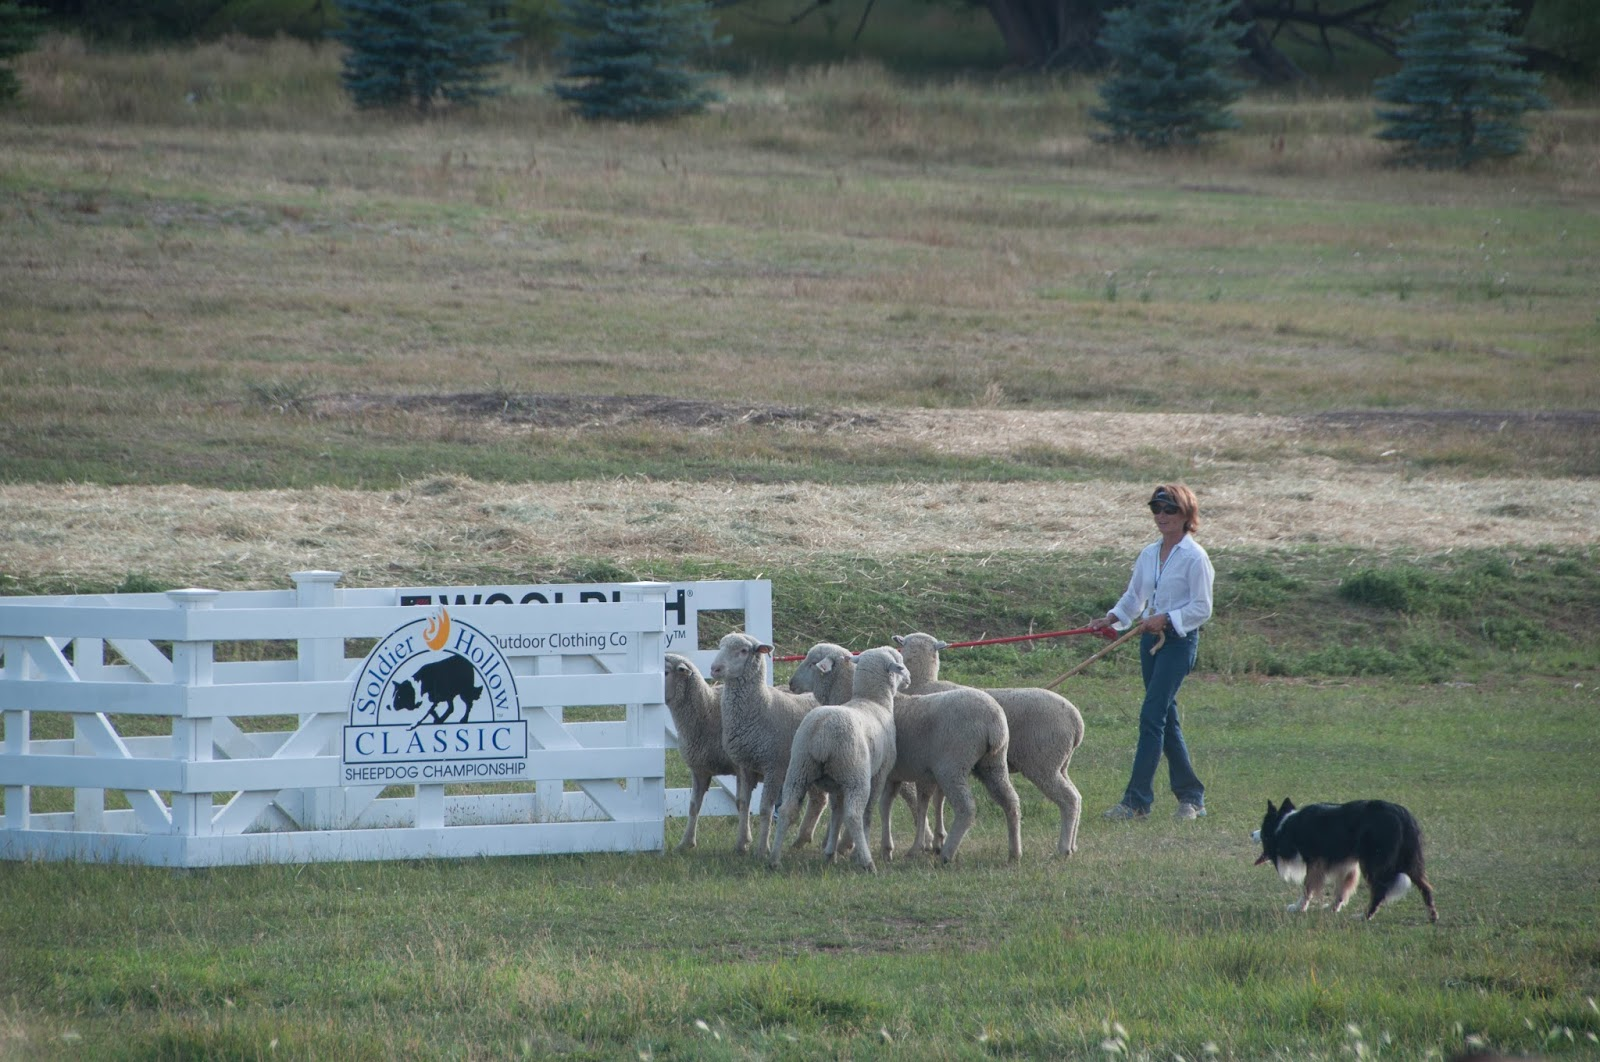 midway utah, sheep dogs, sheep, sheep dog festival, midway classic sheep dog festival, dog festival